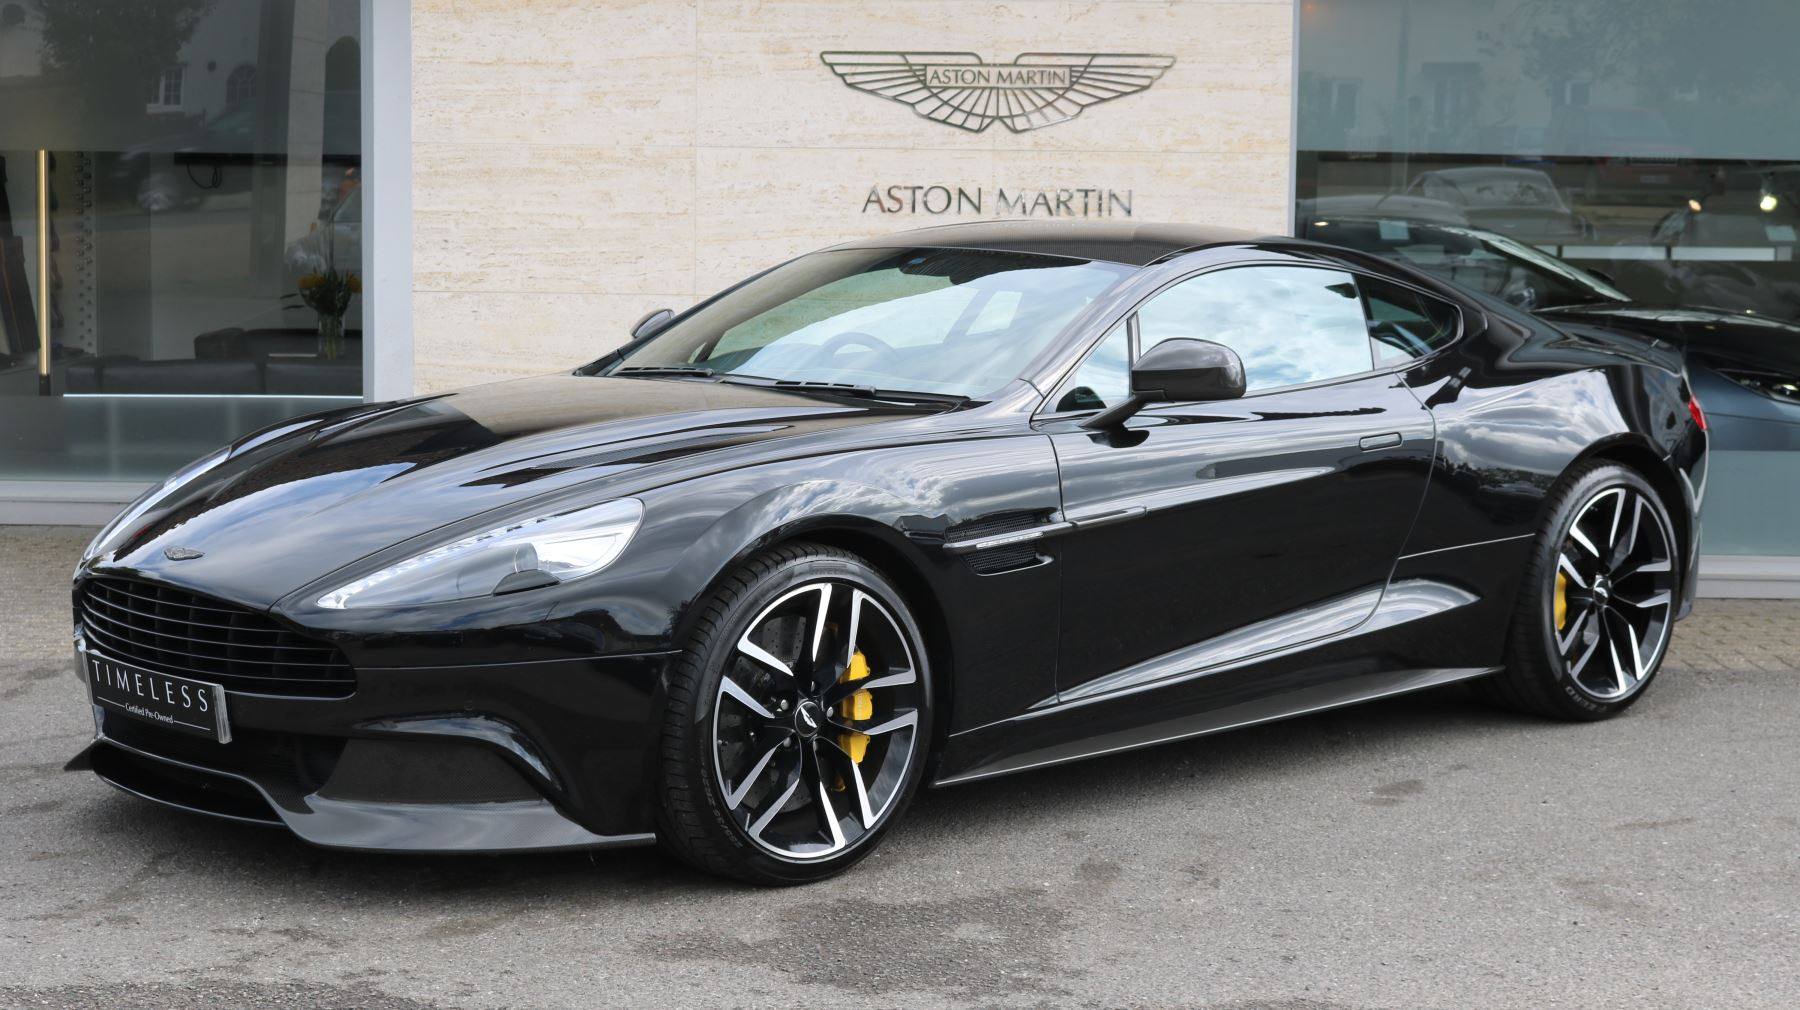 Aston Martin V Vanquish Coupe Automatic Door At Aston - Aston martin v12 vanquish